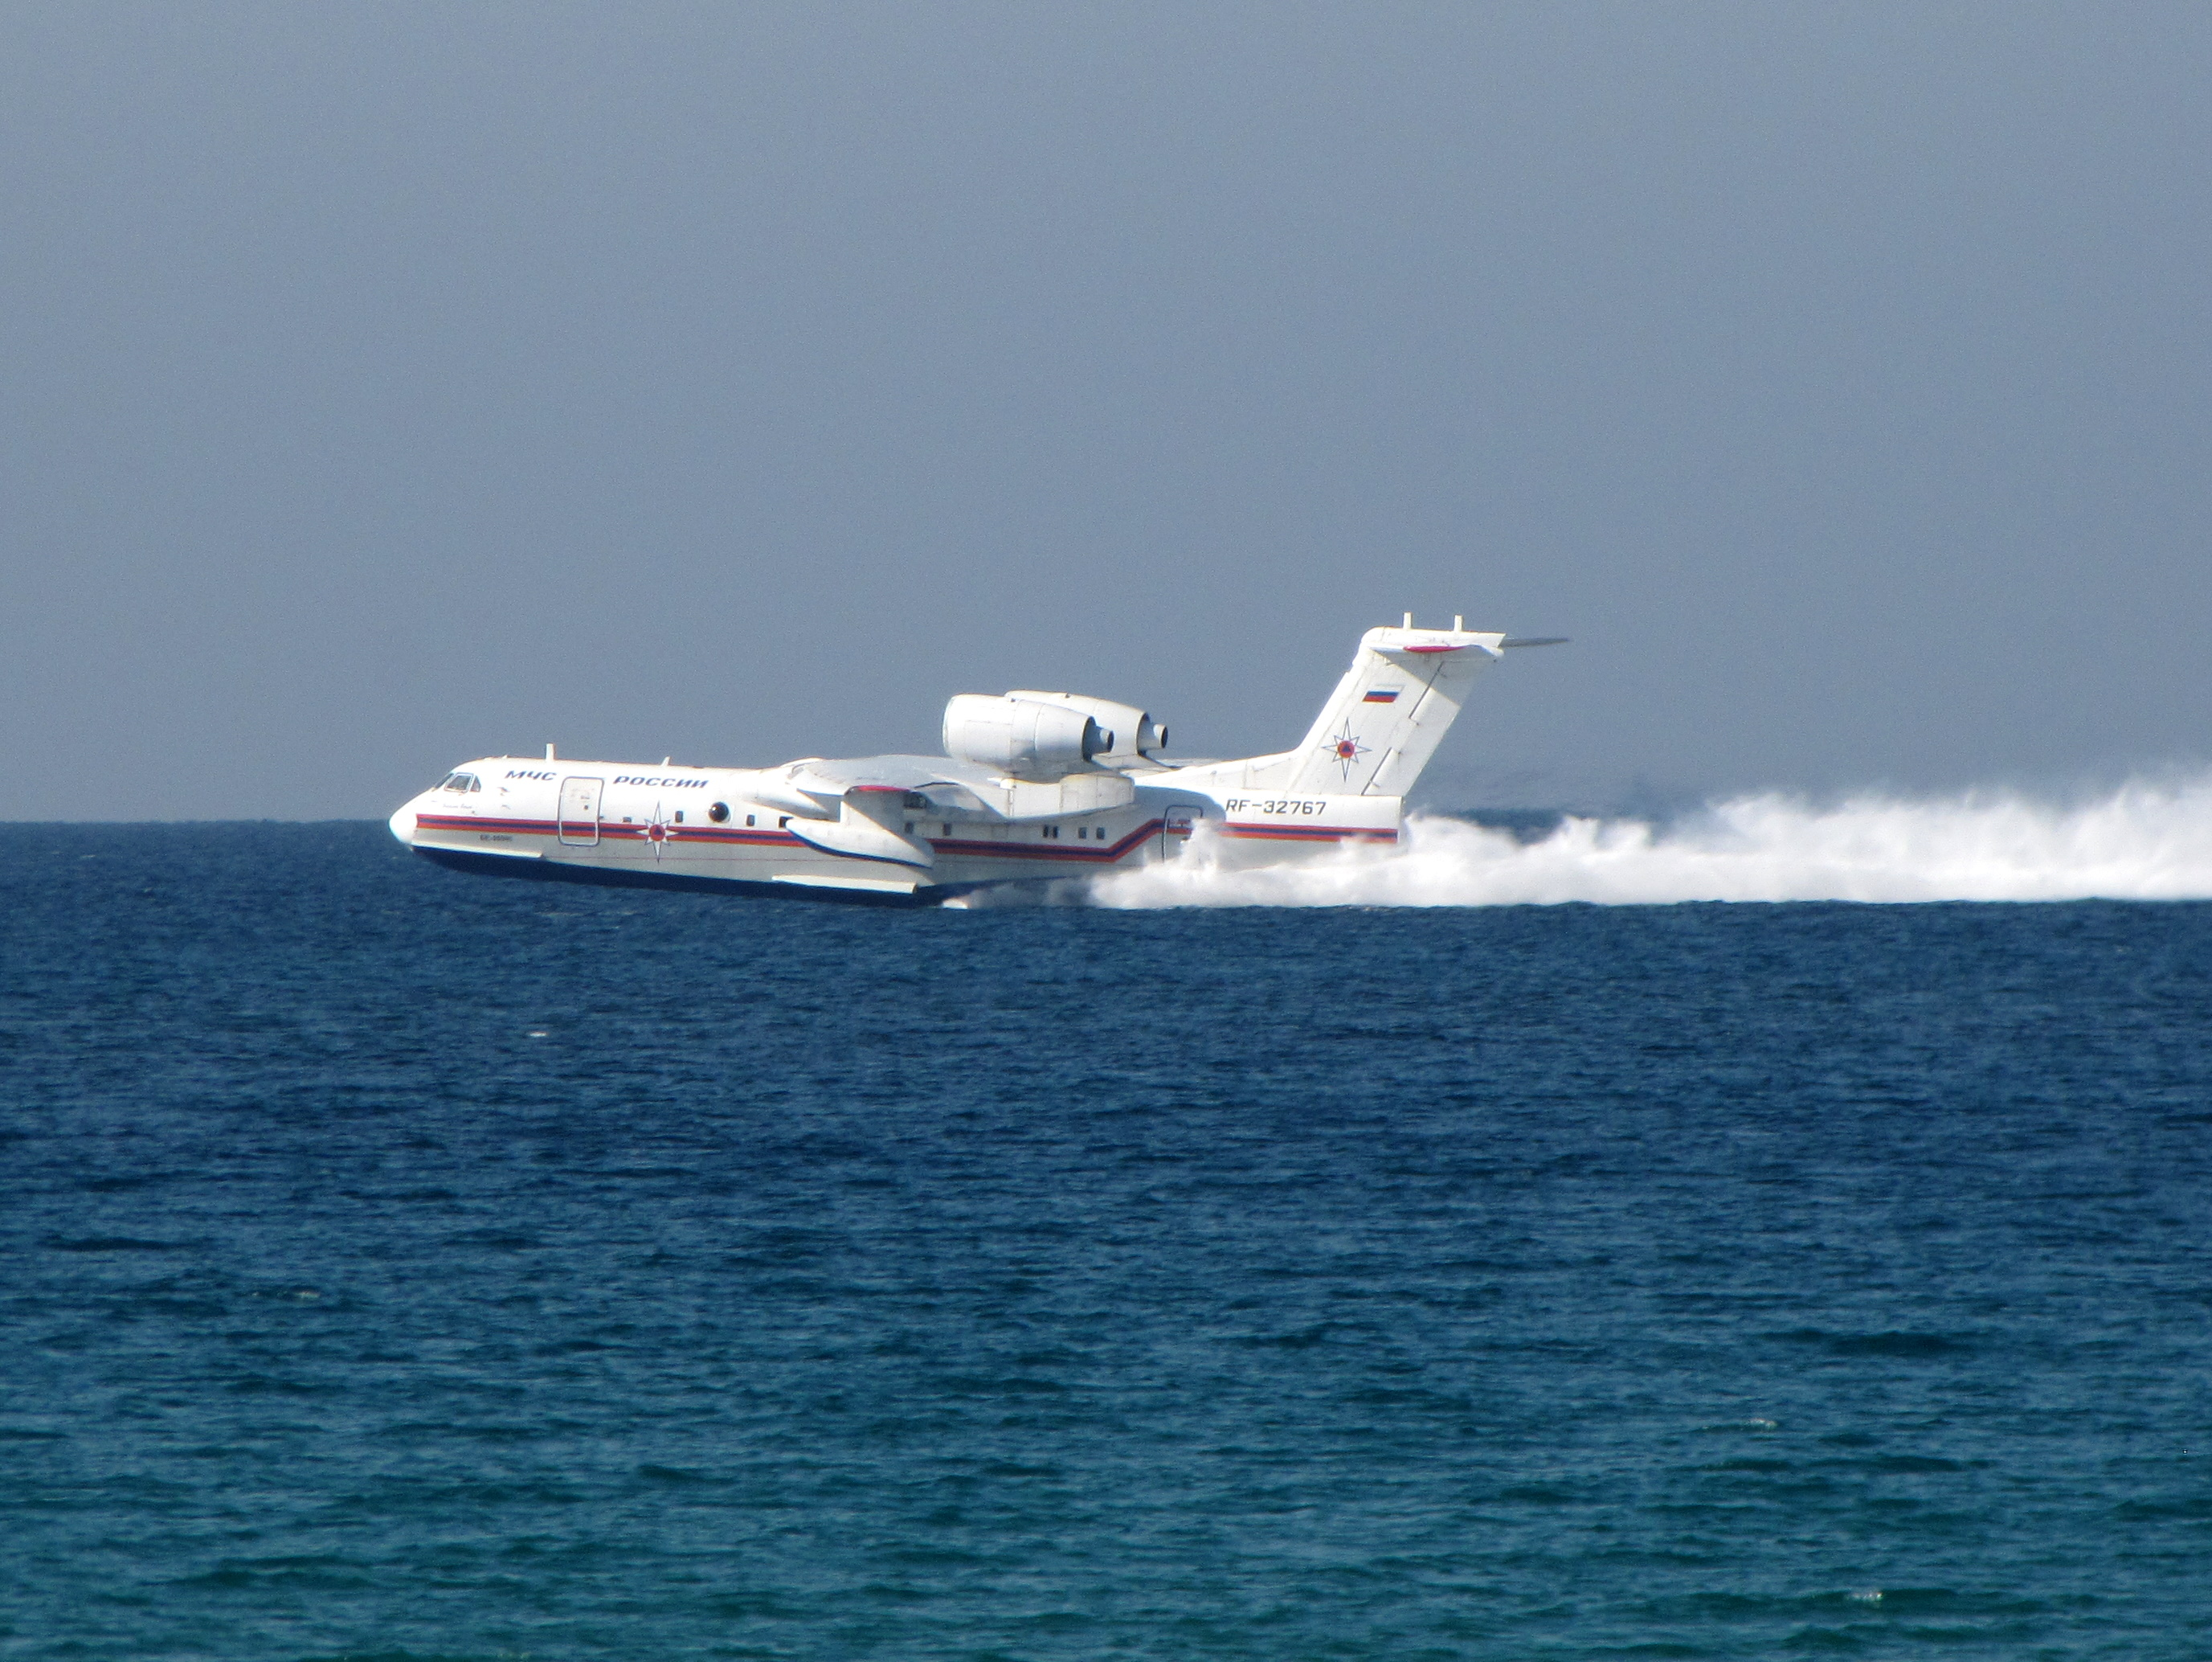 Beriev Be-200 next